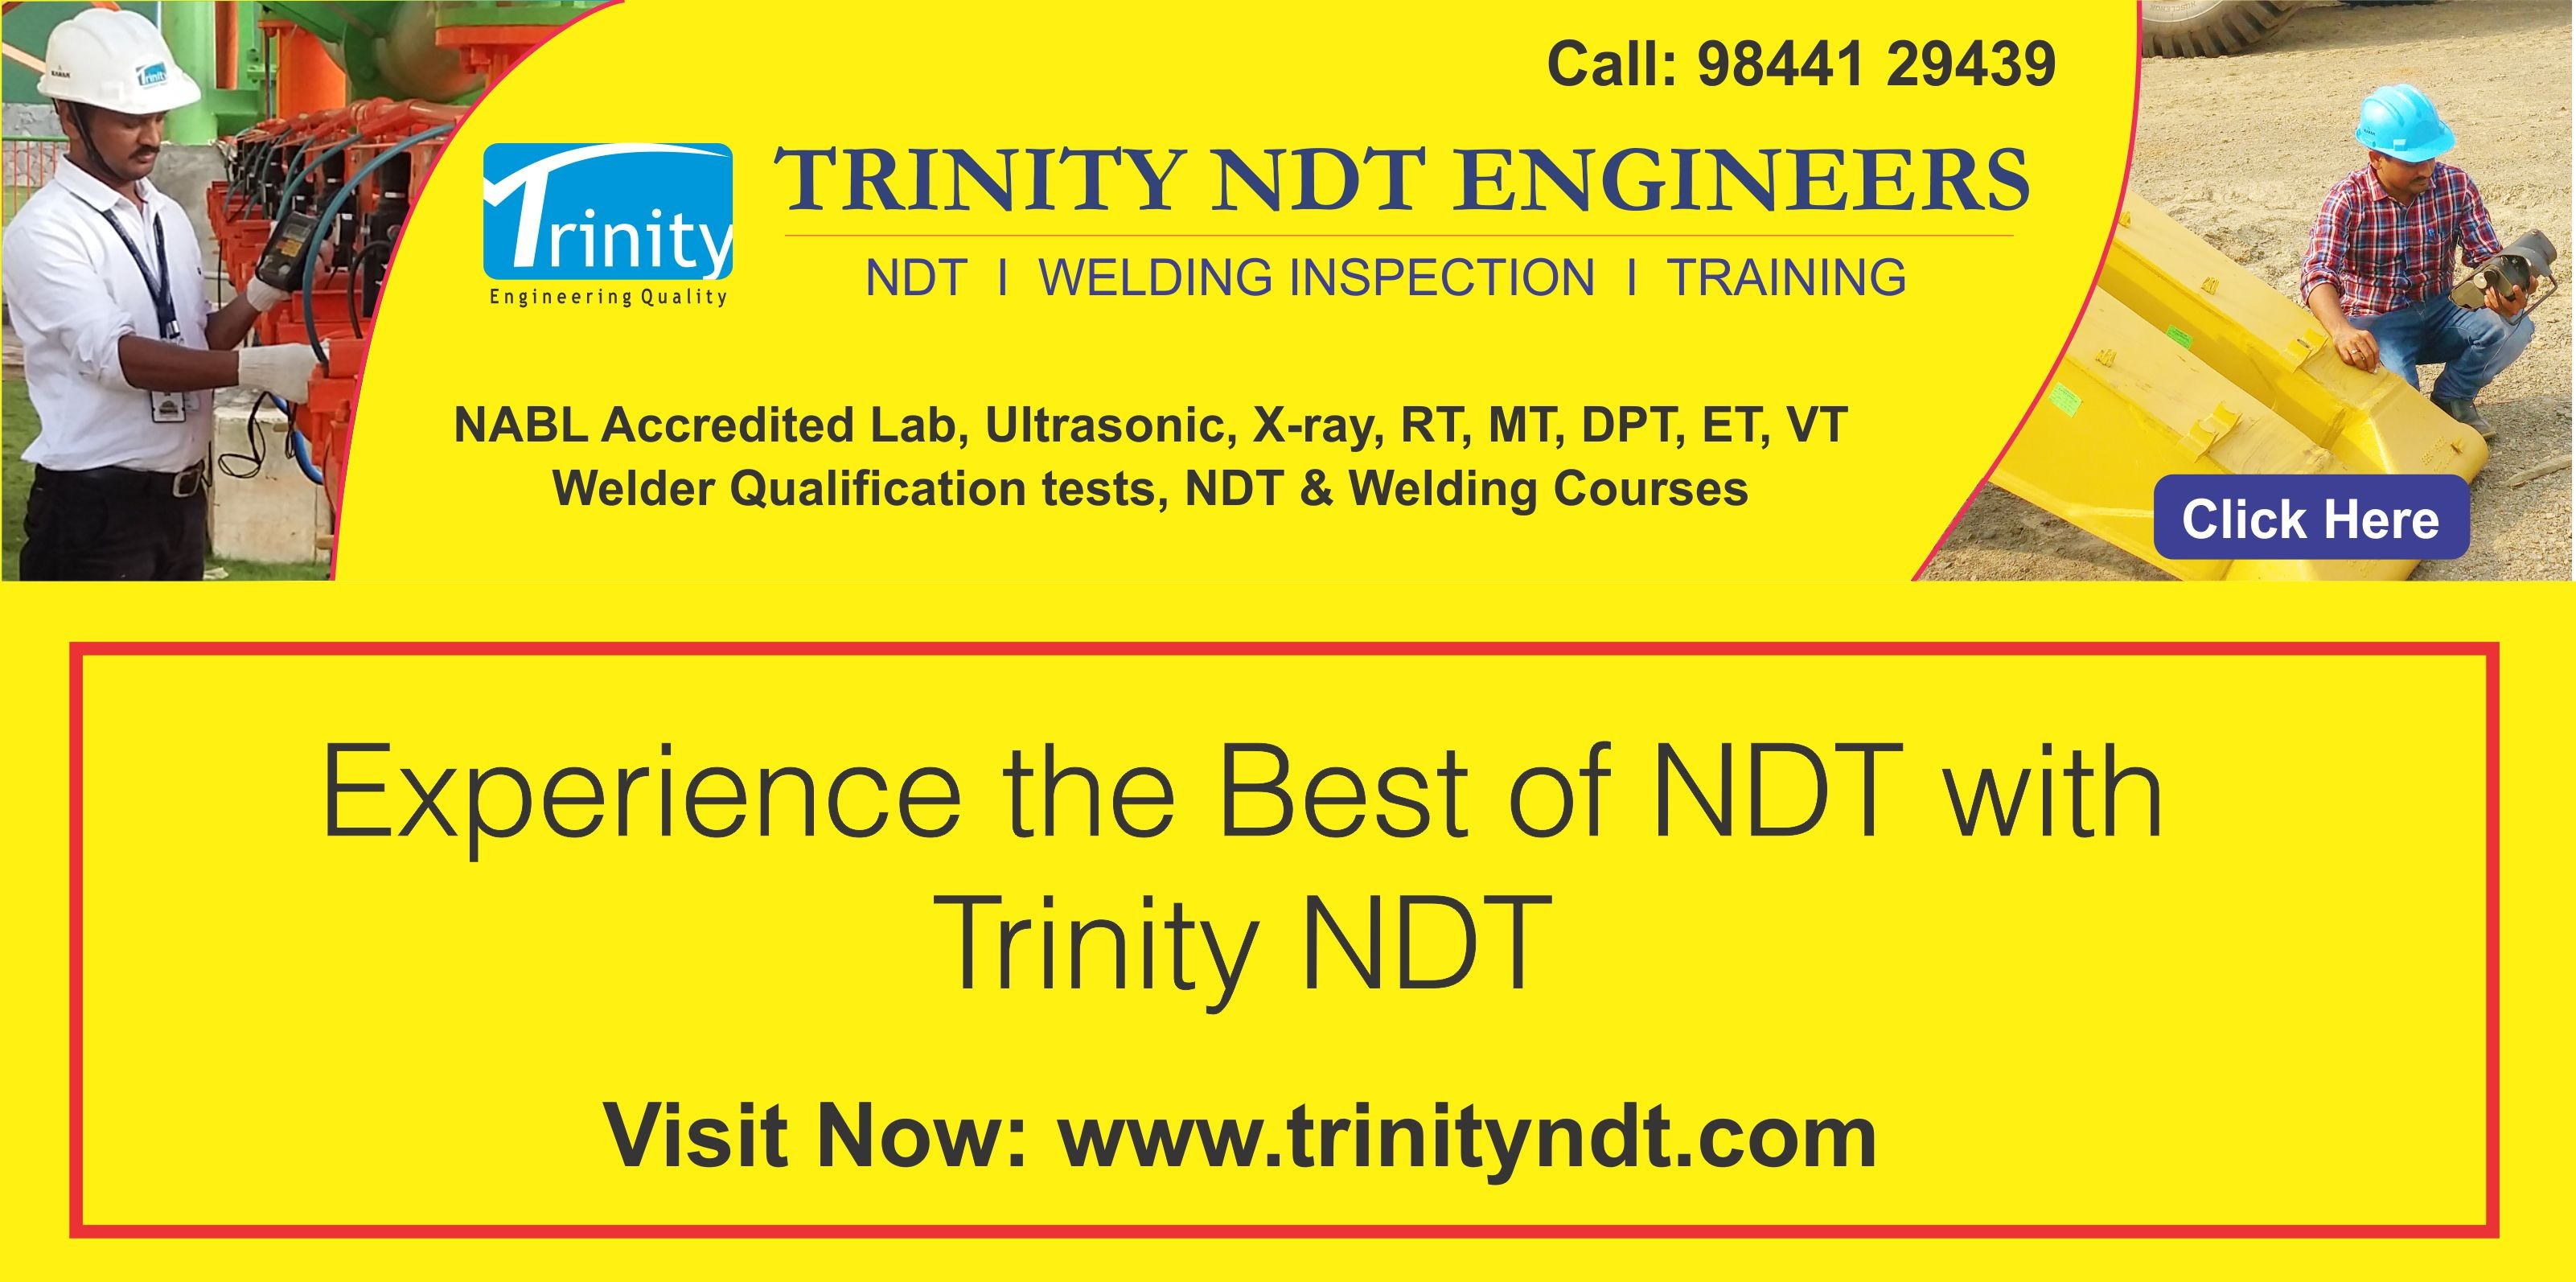 Trinity NDT - NABL Accredited NDT Labs I Welding Inspection